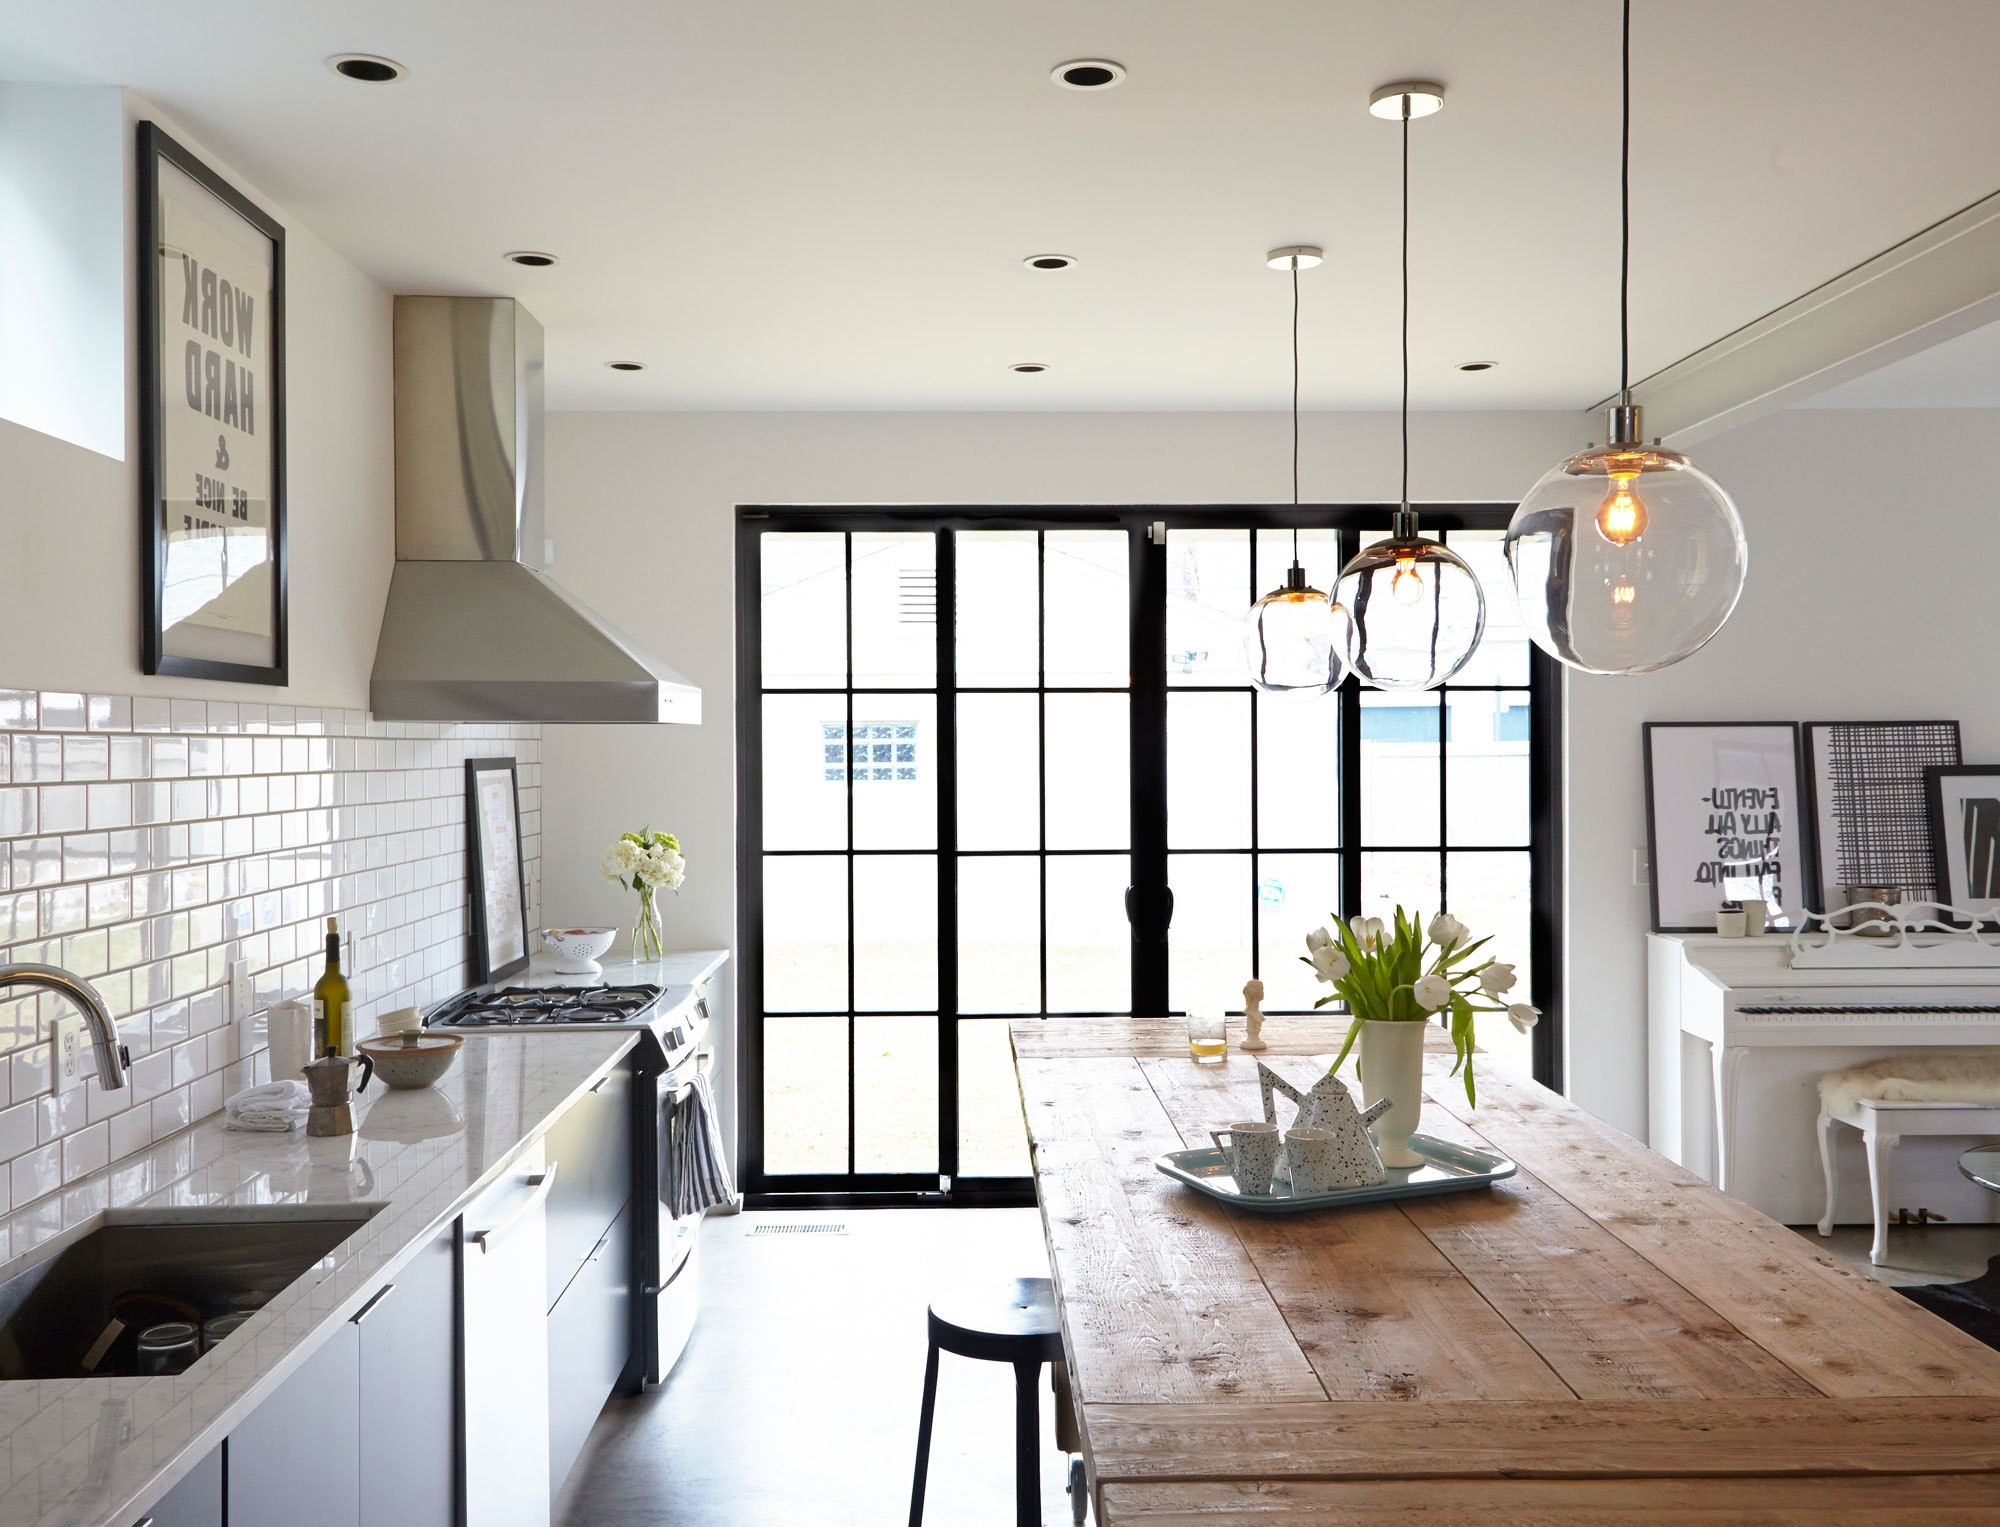 2018 Image 8452 From Post: Globe Pendant Lights Over Island – With 4 With Regard To Over Dining Tables Lights (View 1 of 25)